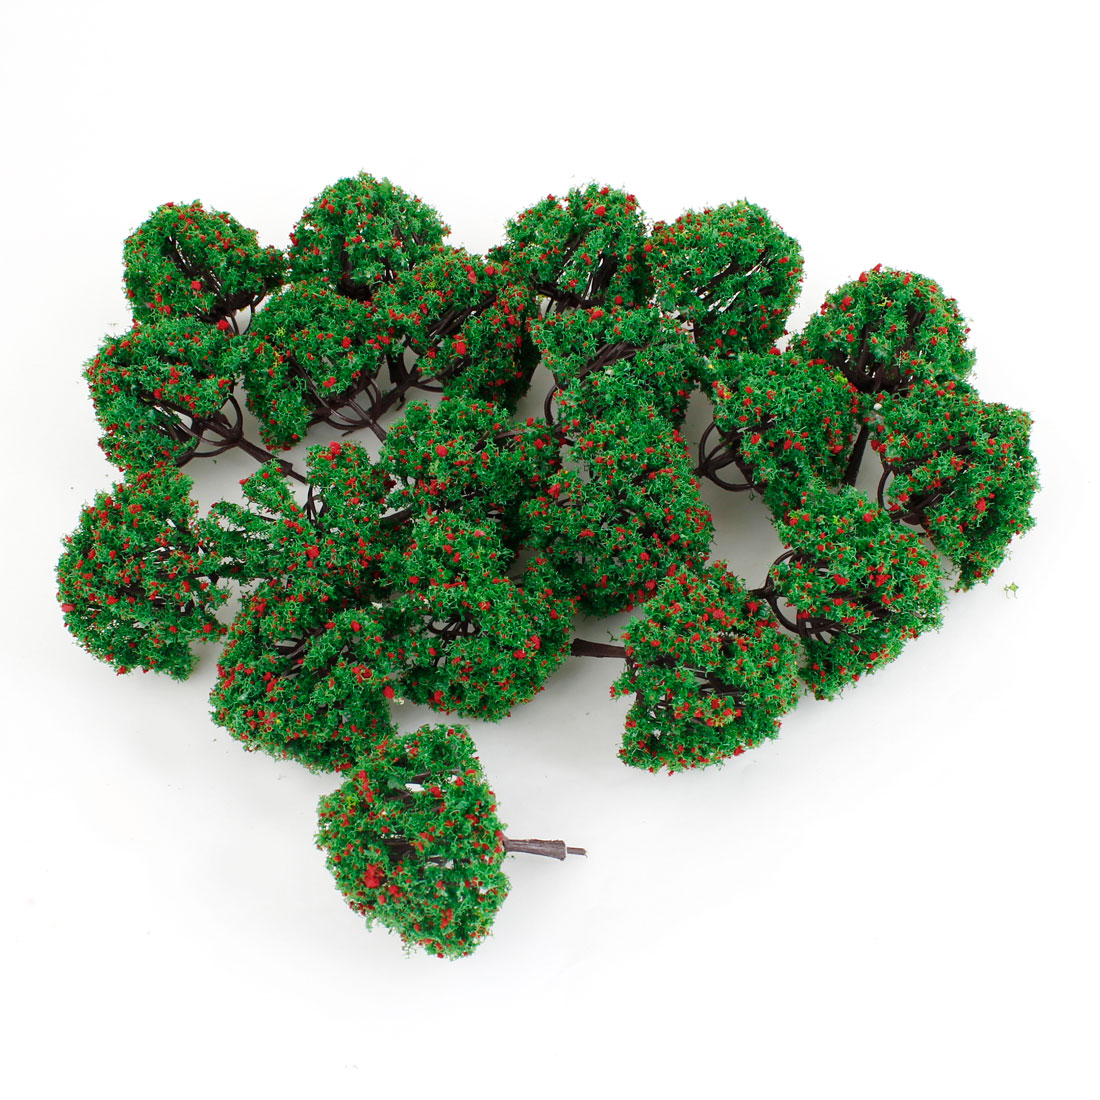 20 Pcs Red Green Plastic Model Flower Trees Decor 7cm High Scale 1:100